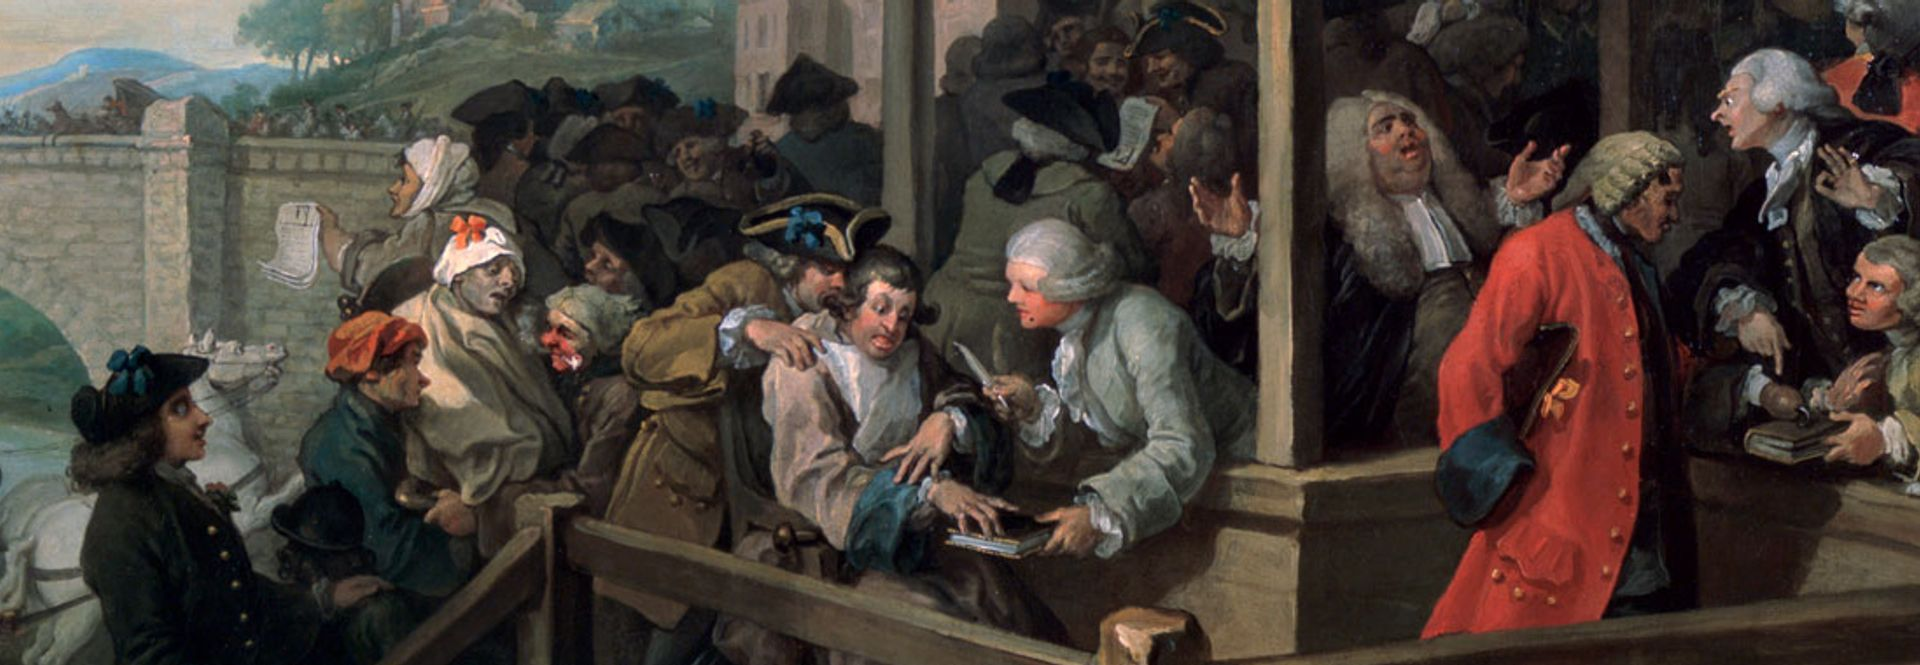 William Hogarth's The Humours of an Election, 3: The Polling (1754-55) (Sir John Soane's Museum London) William Hogarth's The Humours of an Election, 3: The Polling (1754-55) (Sir John Soane's Museum London)